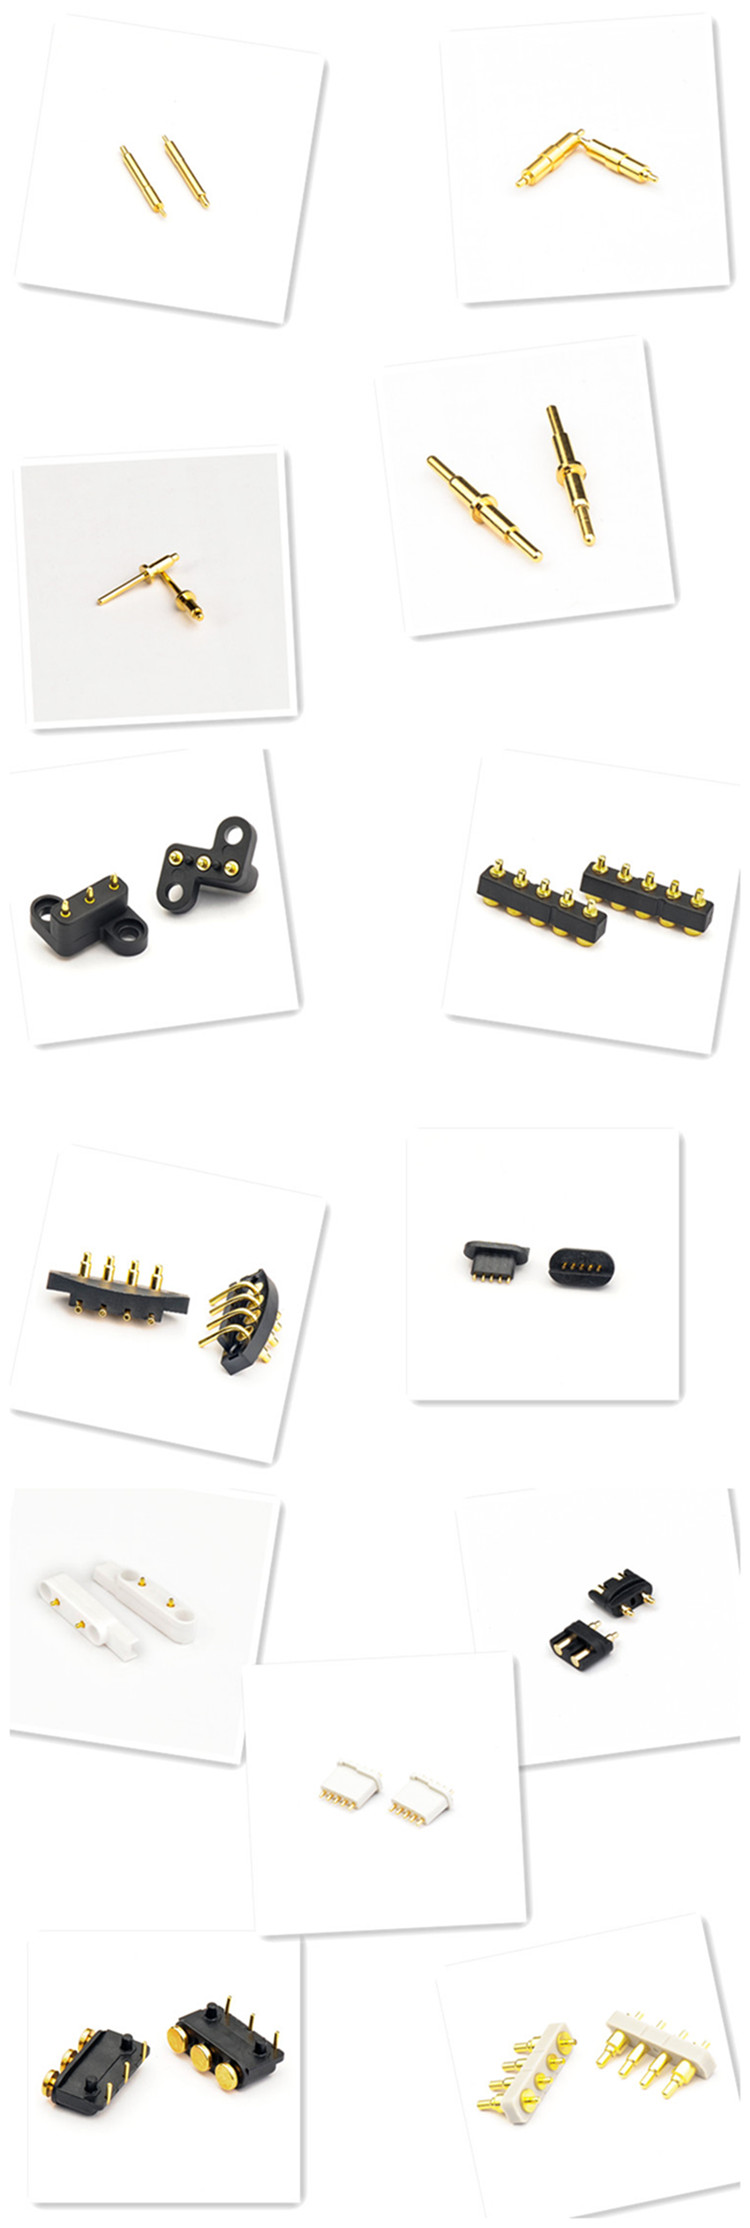 Spring Loaded Magnetic Pogo Pin 6 Pins 2.3 mm Pitch Vertical Single Row Through Holes Solder Male Female Probe Contact